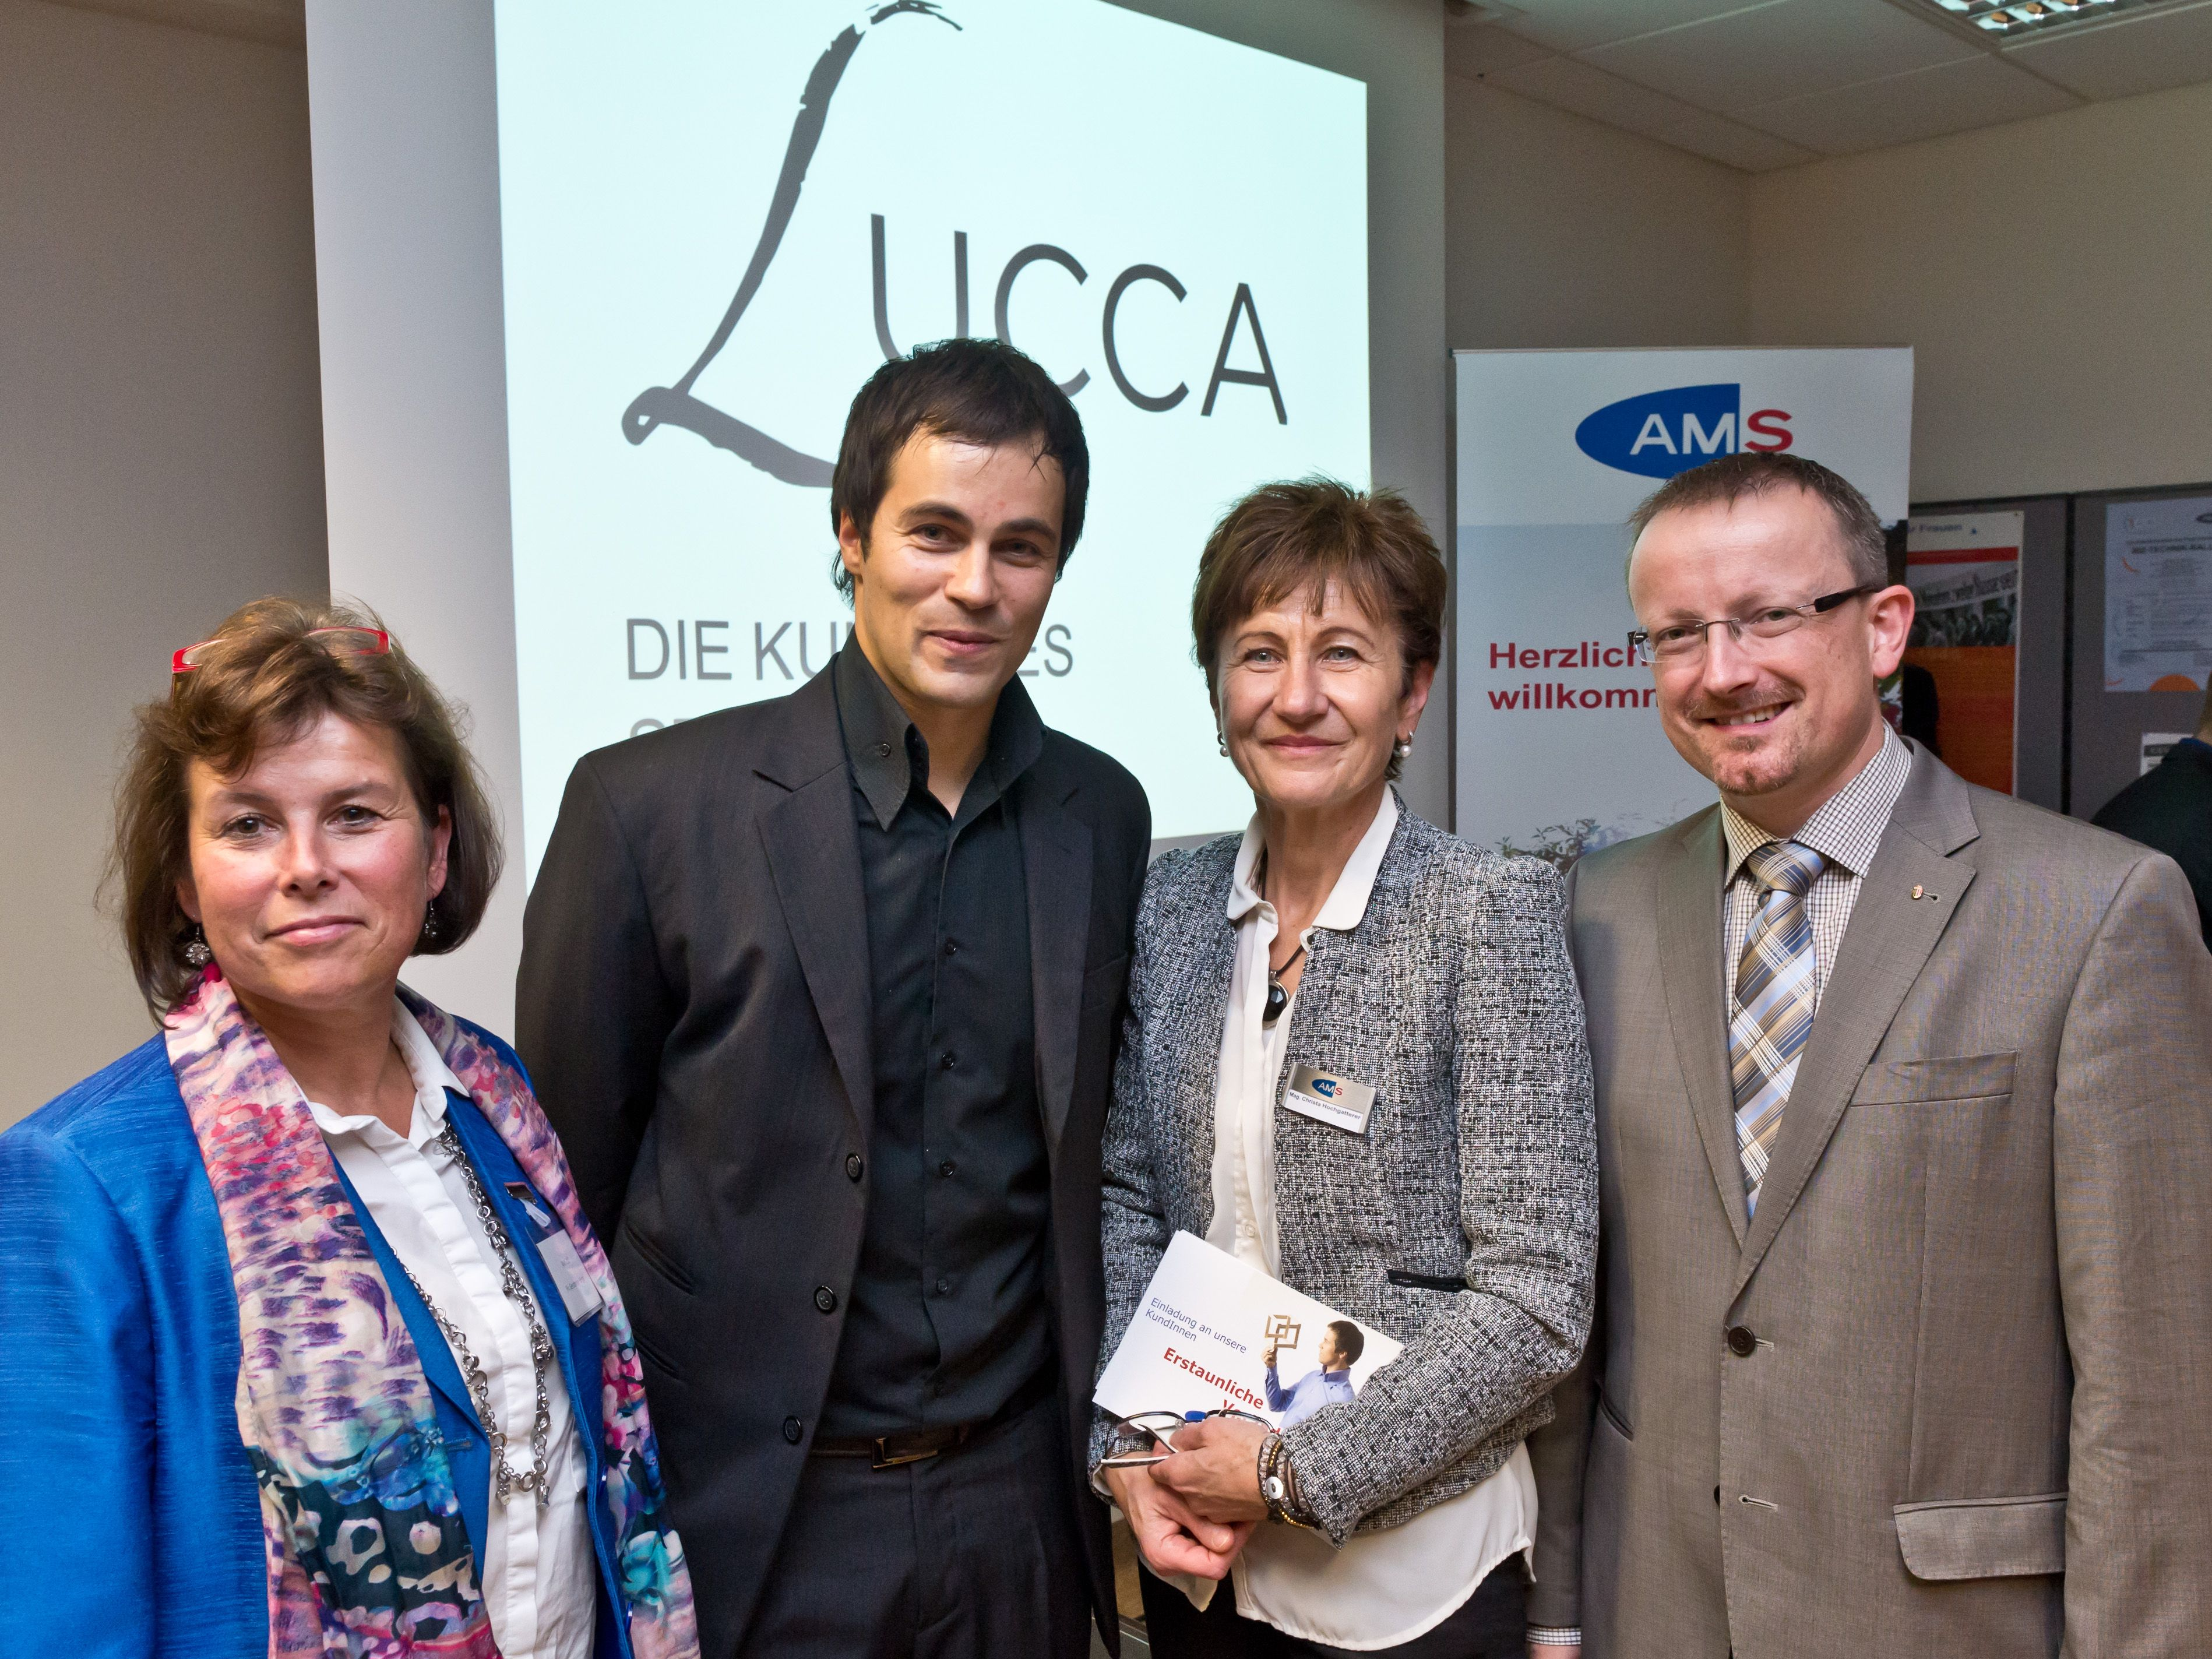 AMS Perg Magisches Kundenmeeting mit Illusionist Lucca